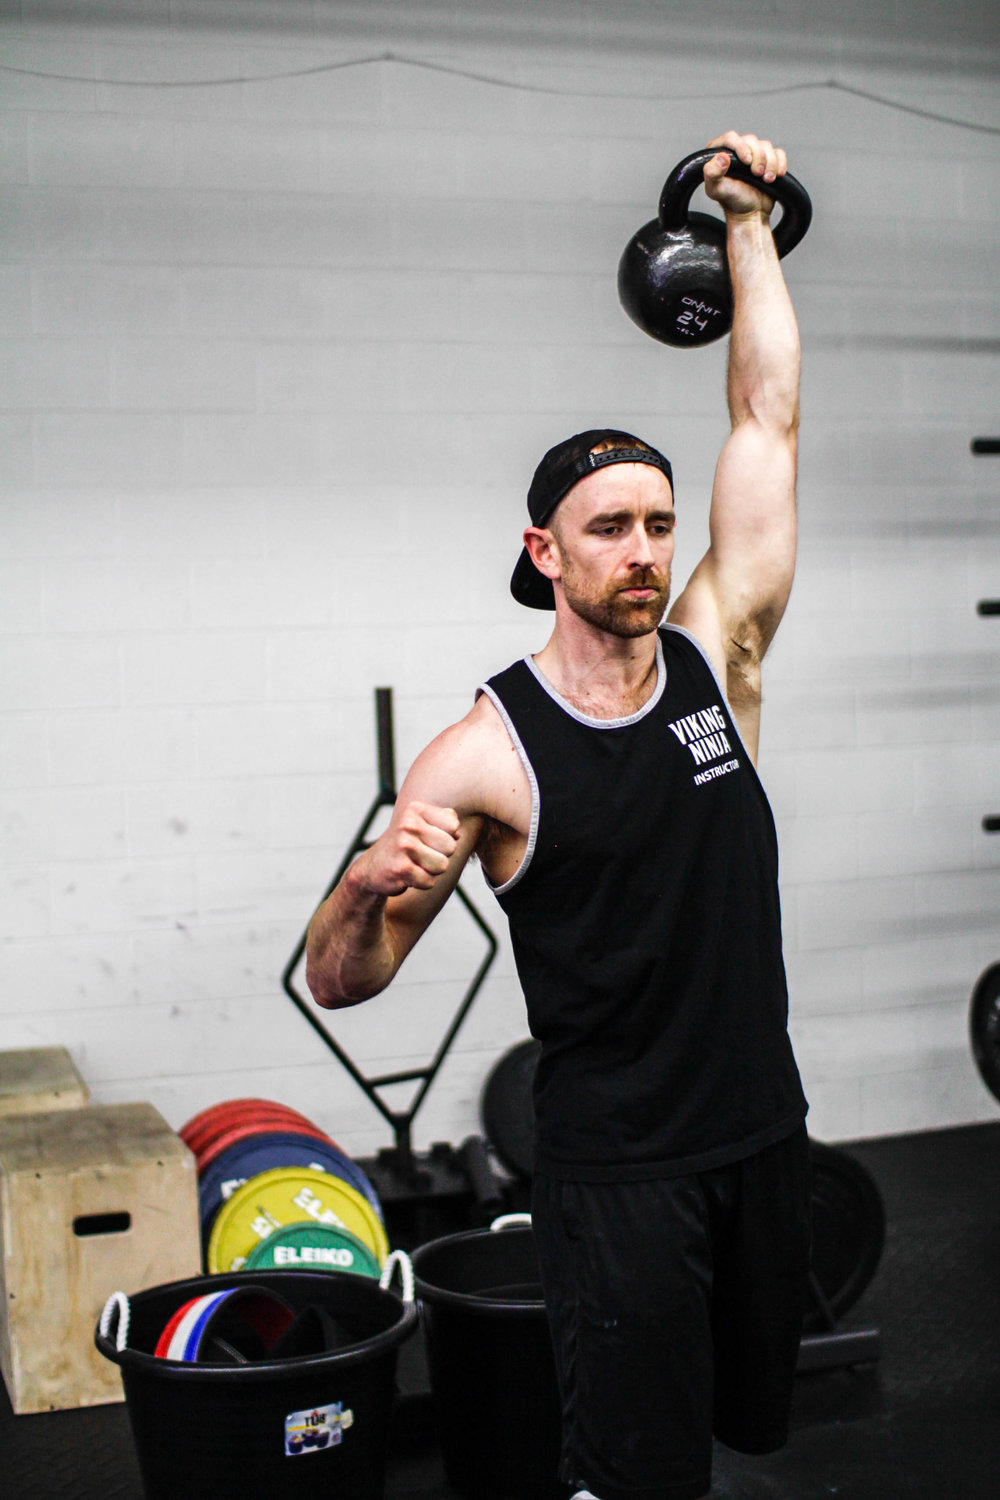 Kettlebell workouts and kettlebell classes near Naperville, Illinois.